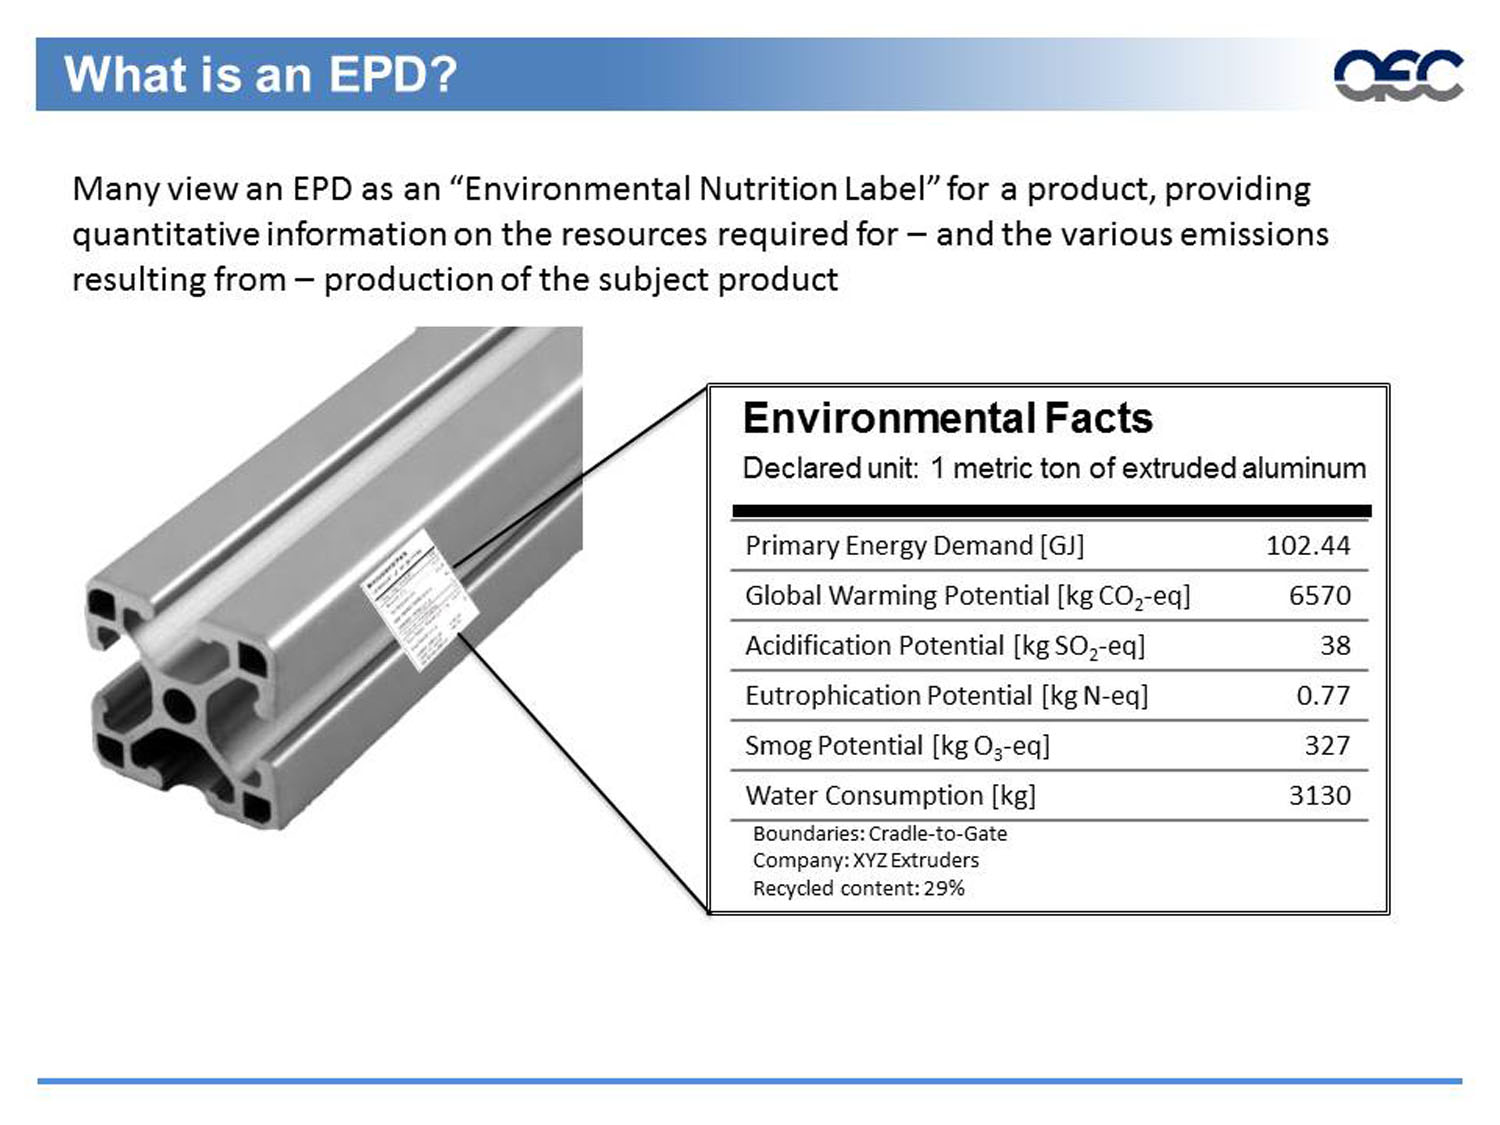 What is an EPD?